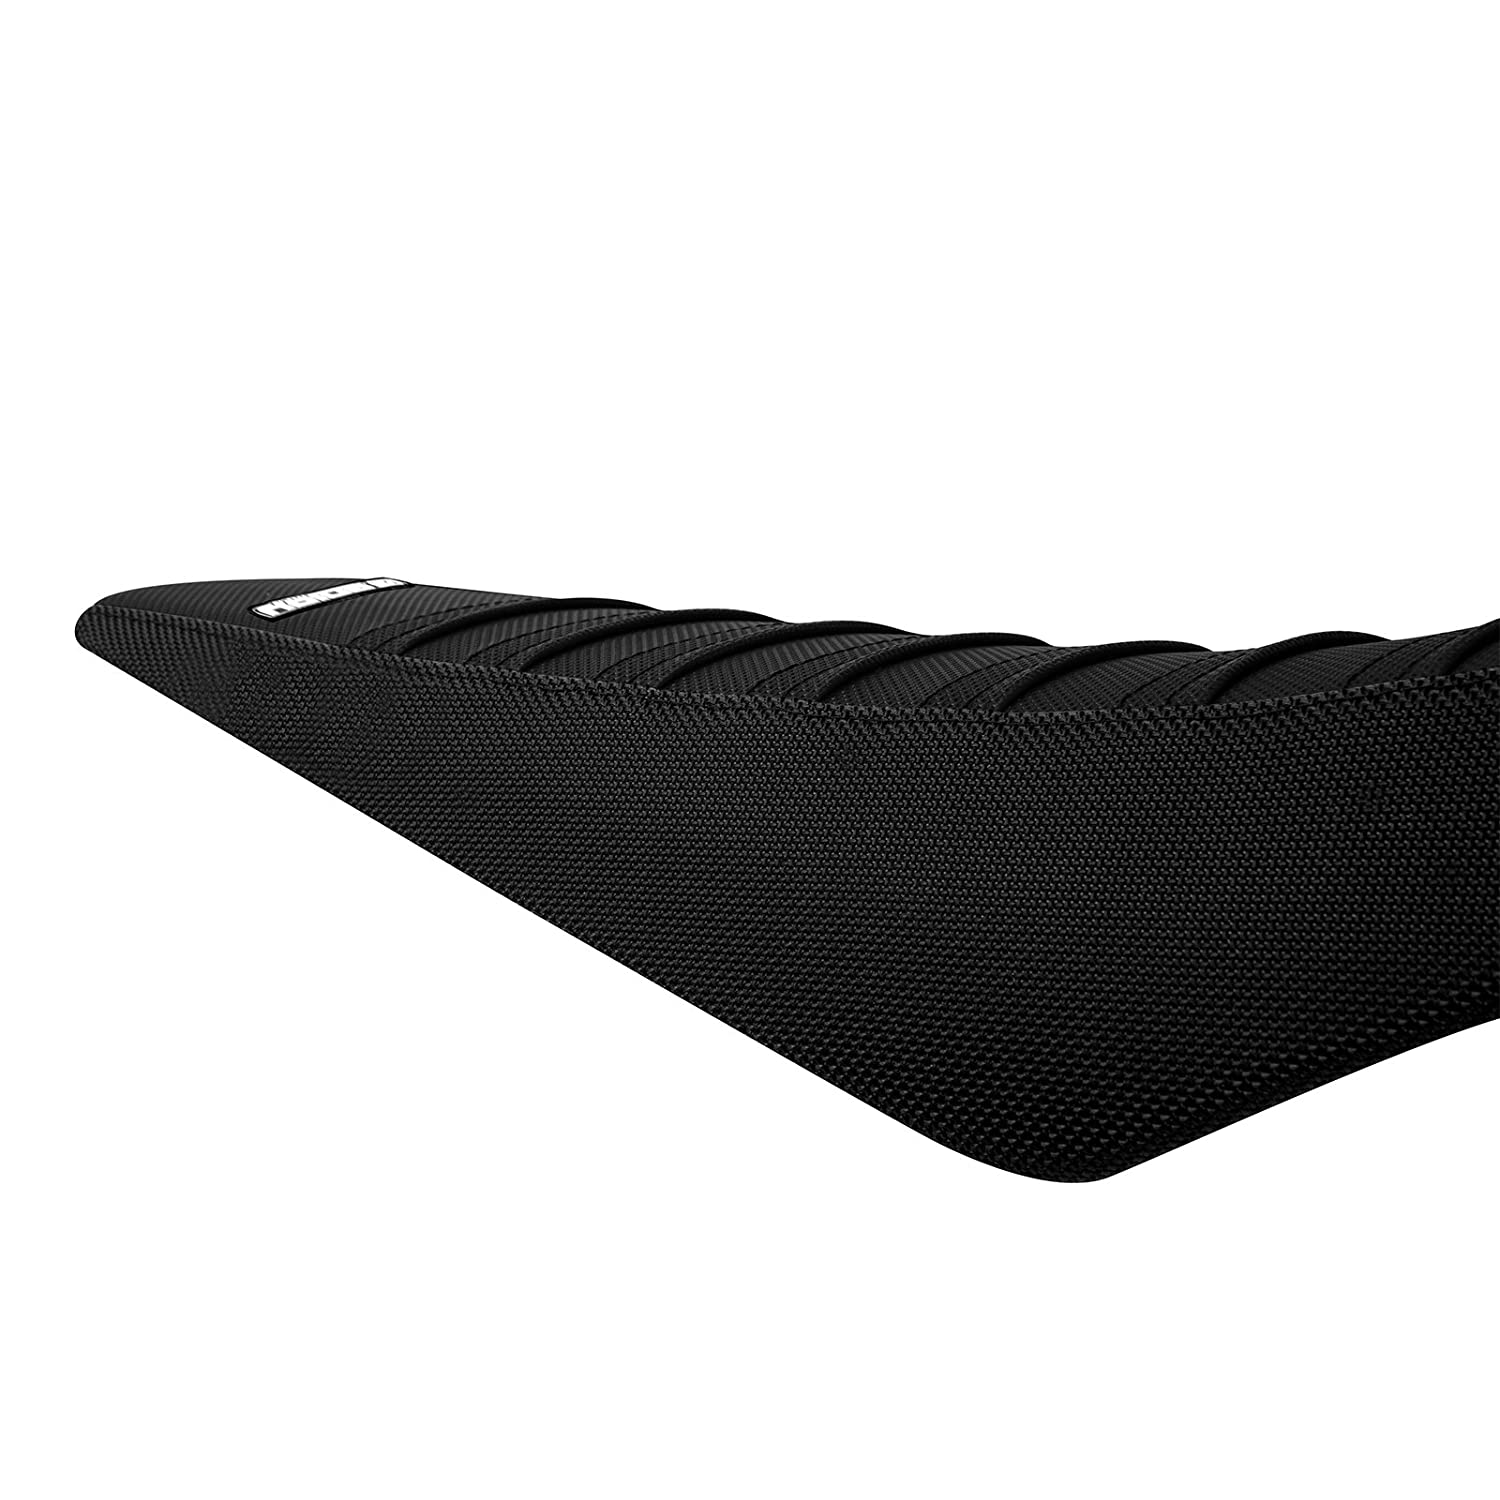 All Black Pleated Enjoy MFG Pleated Seat Cover for 2002-2017 Yamaha YZ 125//250 Later Models